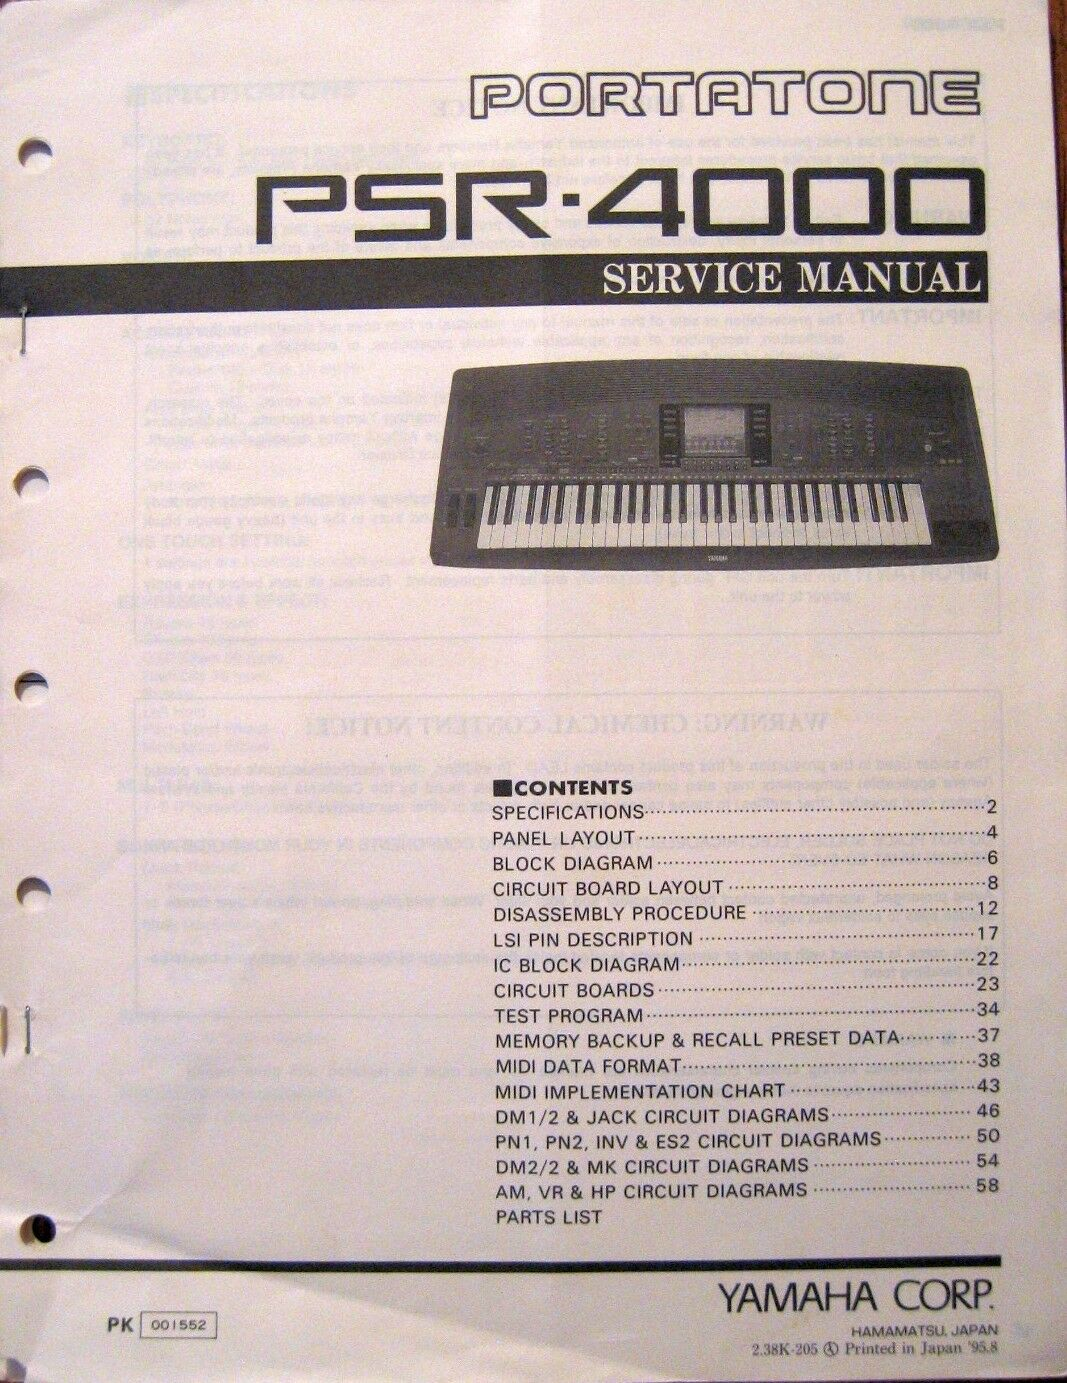 Yamaha Psr 4000 Portatone Midi Keyboard Workstation Original Service Wiring Diagram Manual Book Ebay